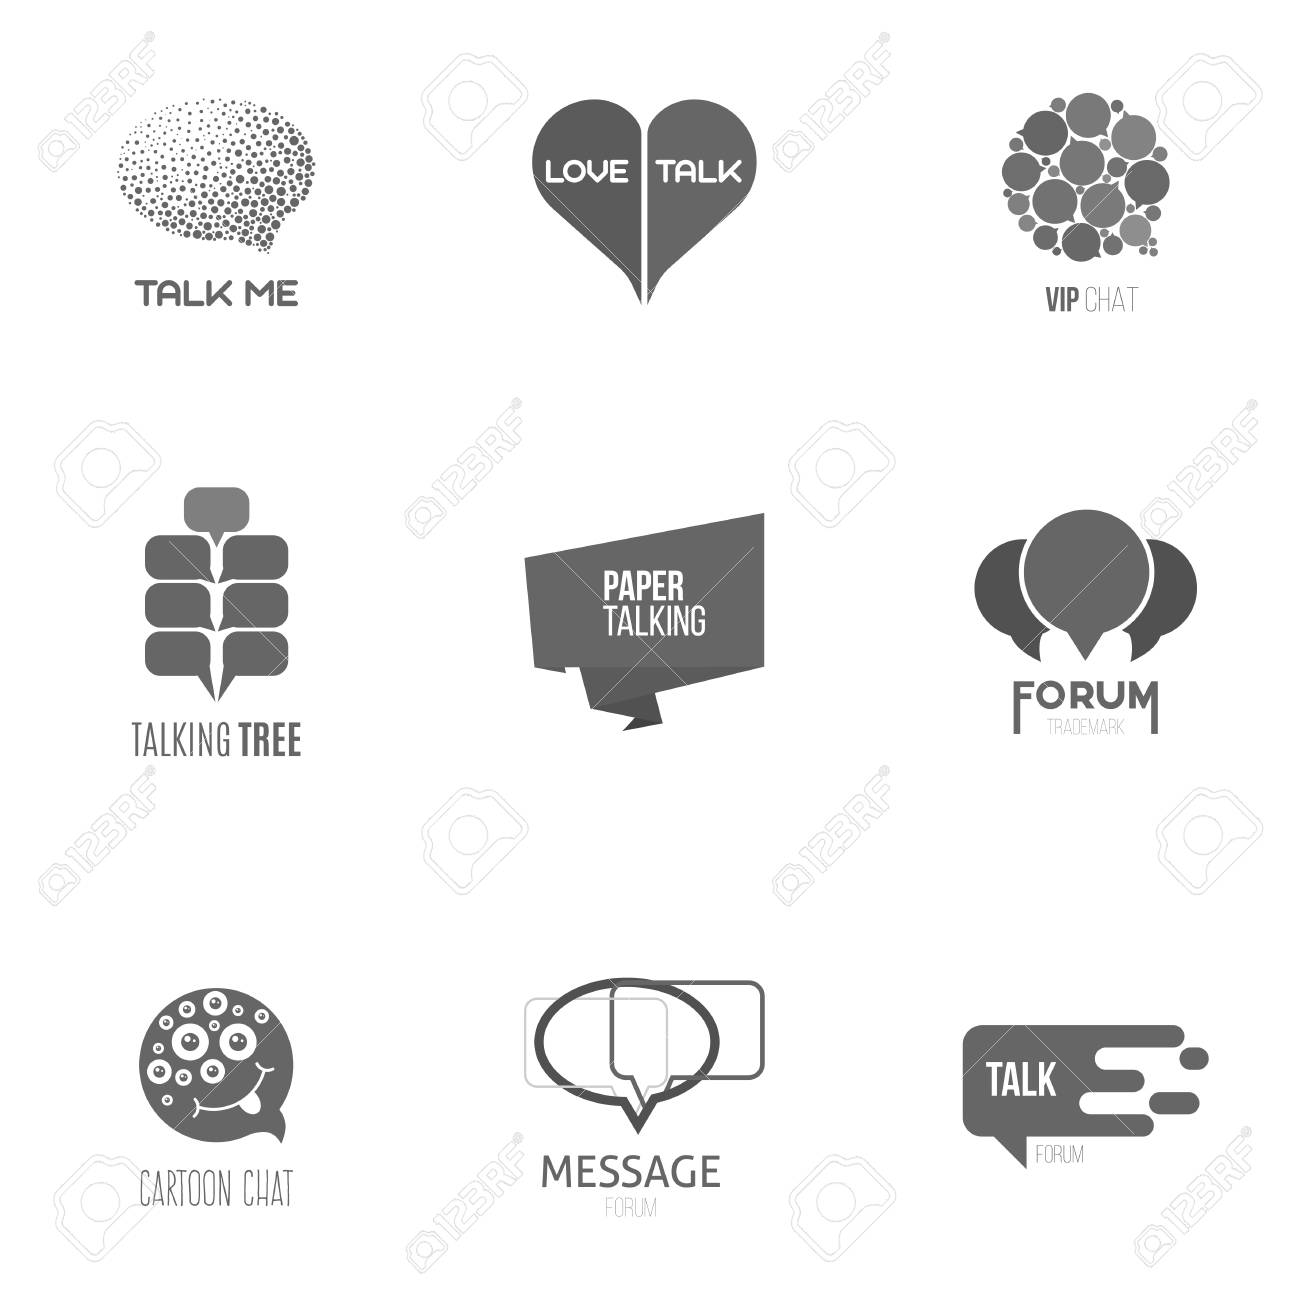 Logo inspiration for shops, companies, advertising or other business